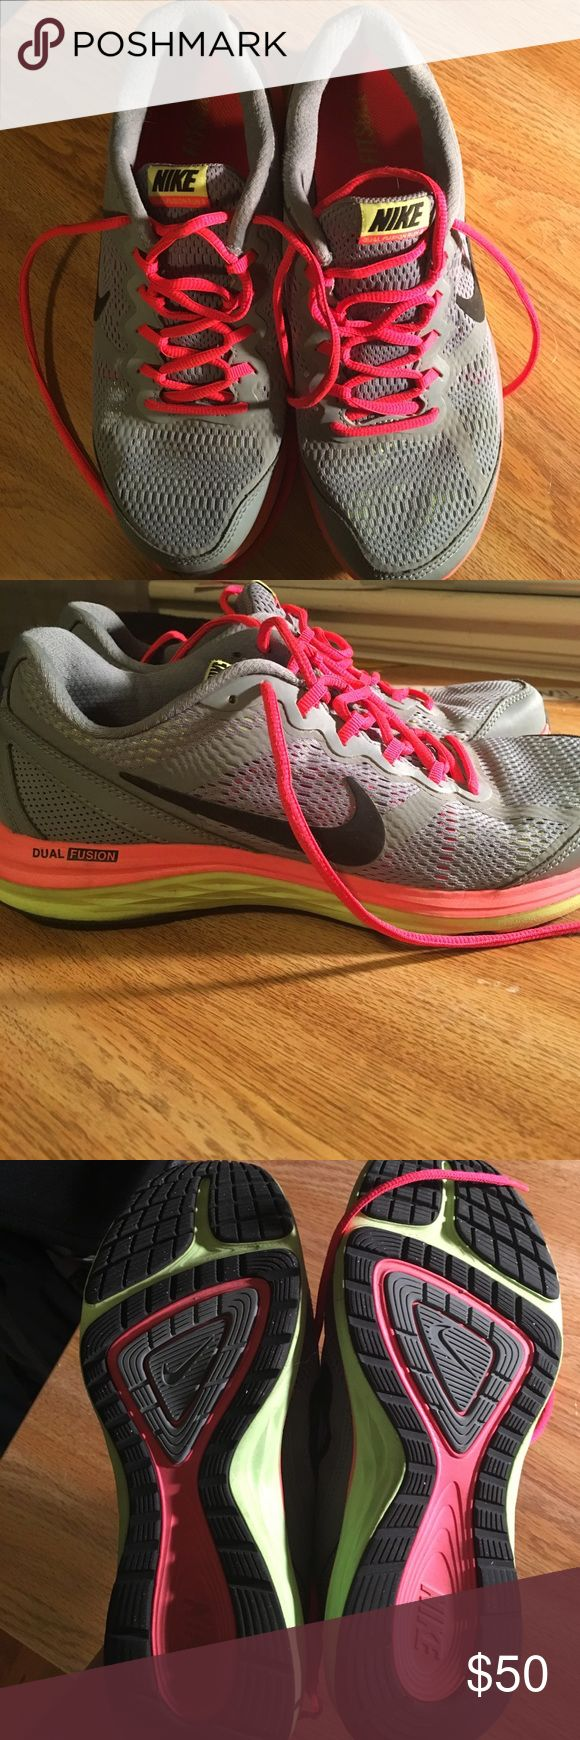 Nike Dual Fusion Run 3 Nike Dual Fusion Run 3; gray, pink, and lime green sneakers; gently worn, still in great shape!!; Offers encouraged!! Nike Shoes Athletic Shoes